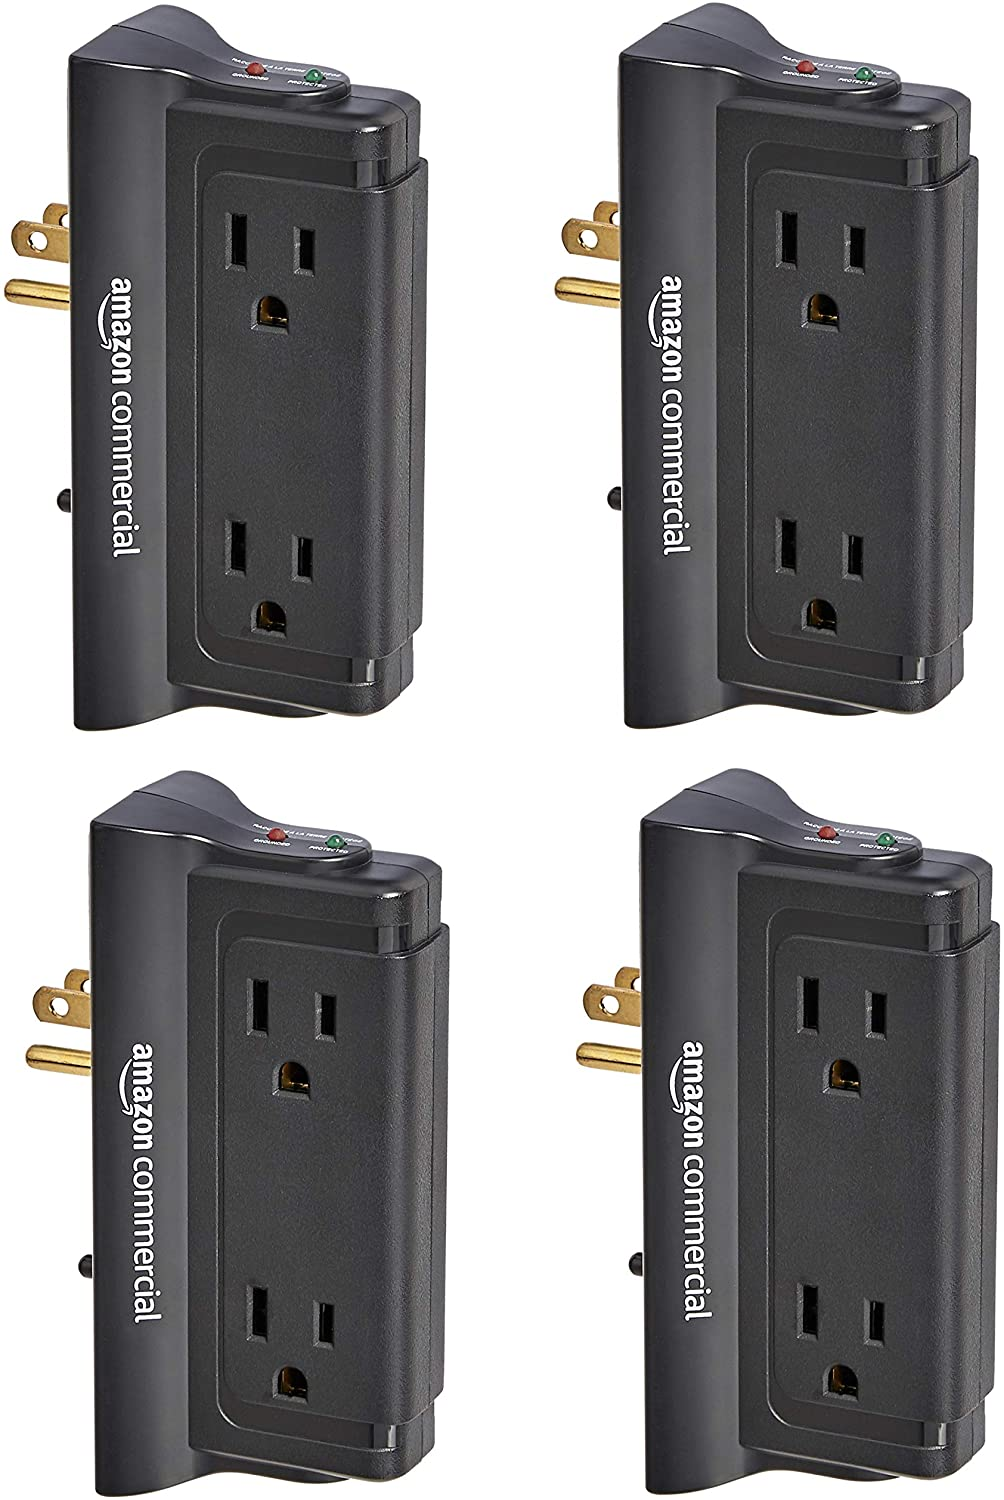 AmazonCommercial 4-Outlet Wall Mounted Surge Protector (6-Pack) $20.10 Coupon